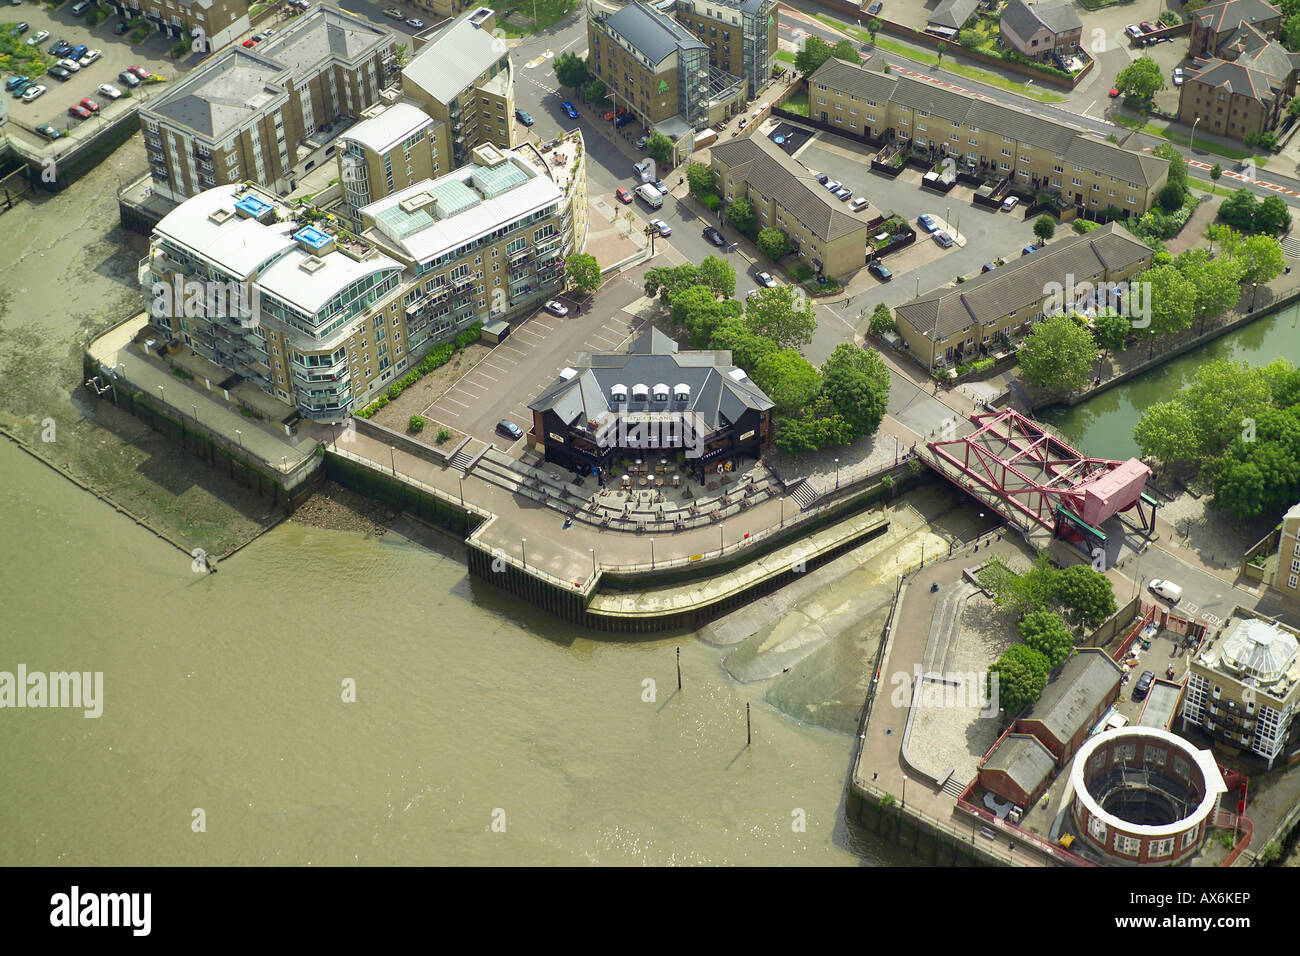 Aerial view of the Spice Island pub on the banks of the River Thames in the Rotherhithe area of London Stock Photo